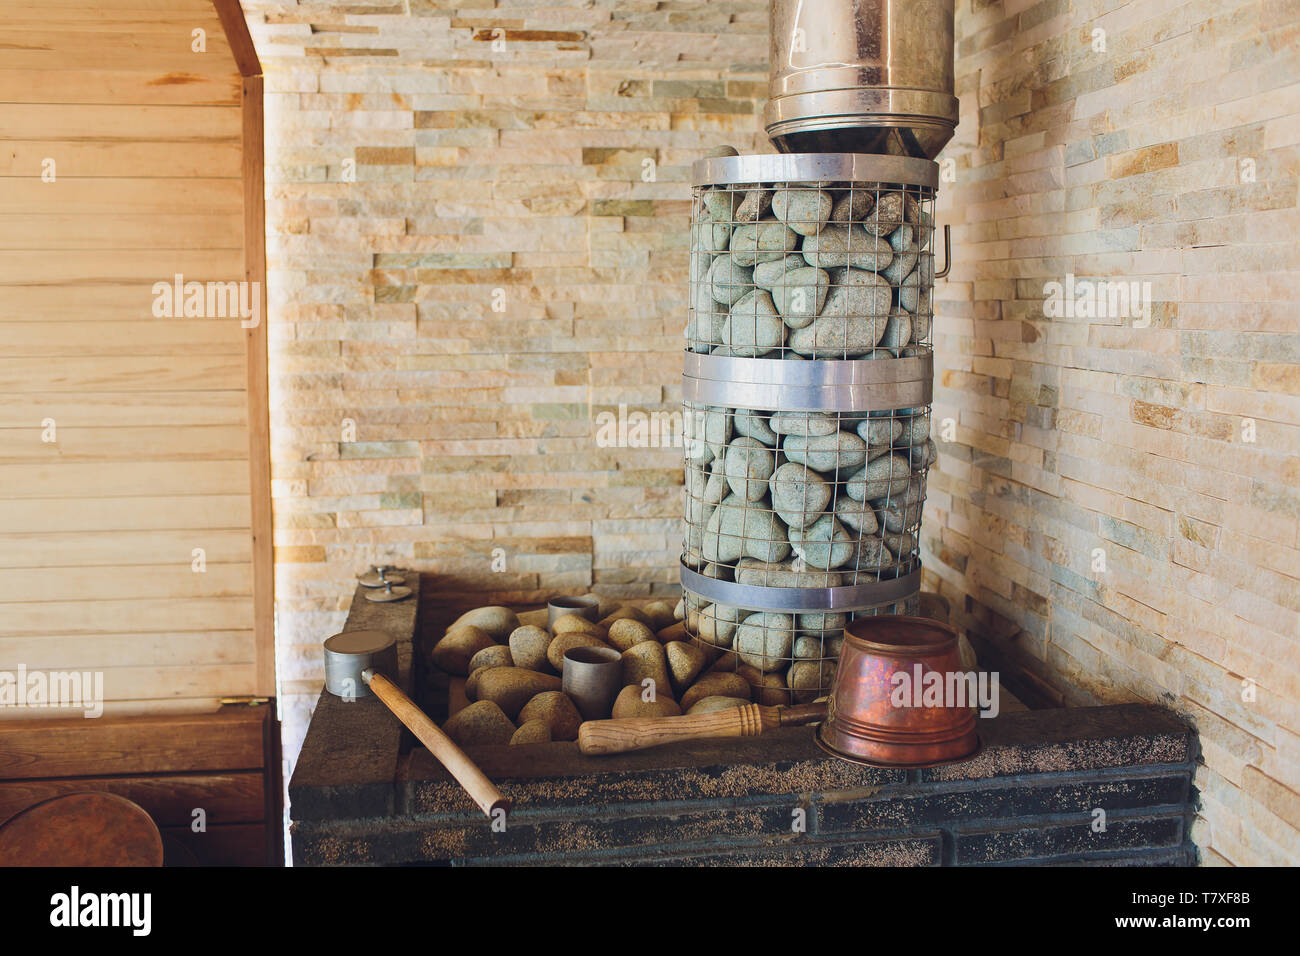 Interior of traditional finnish sauna with stones on the stove and wooden walls, indoors close-up - Stock Image